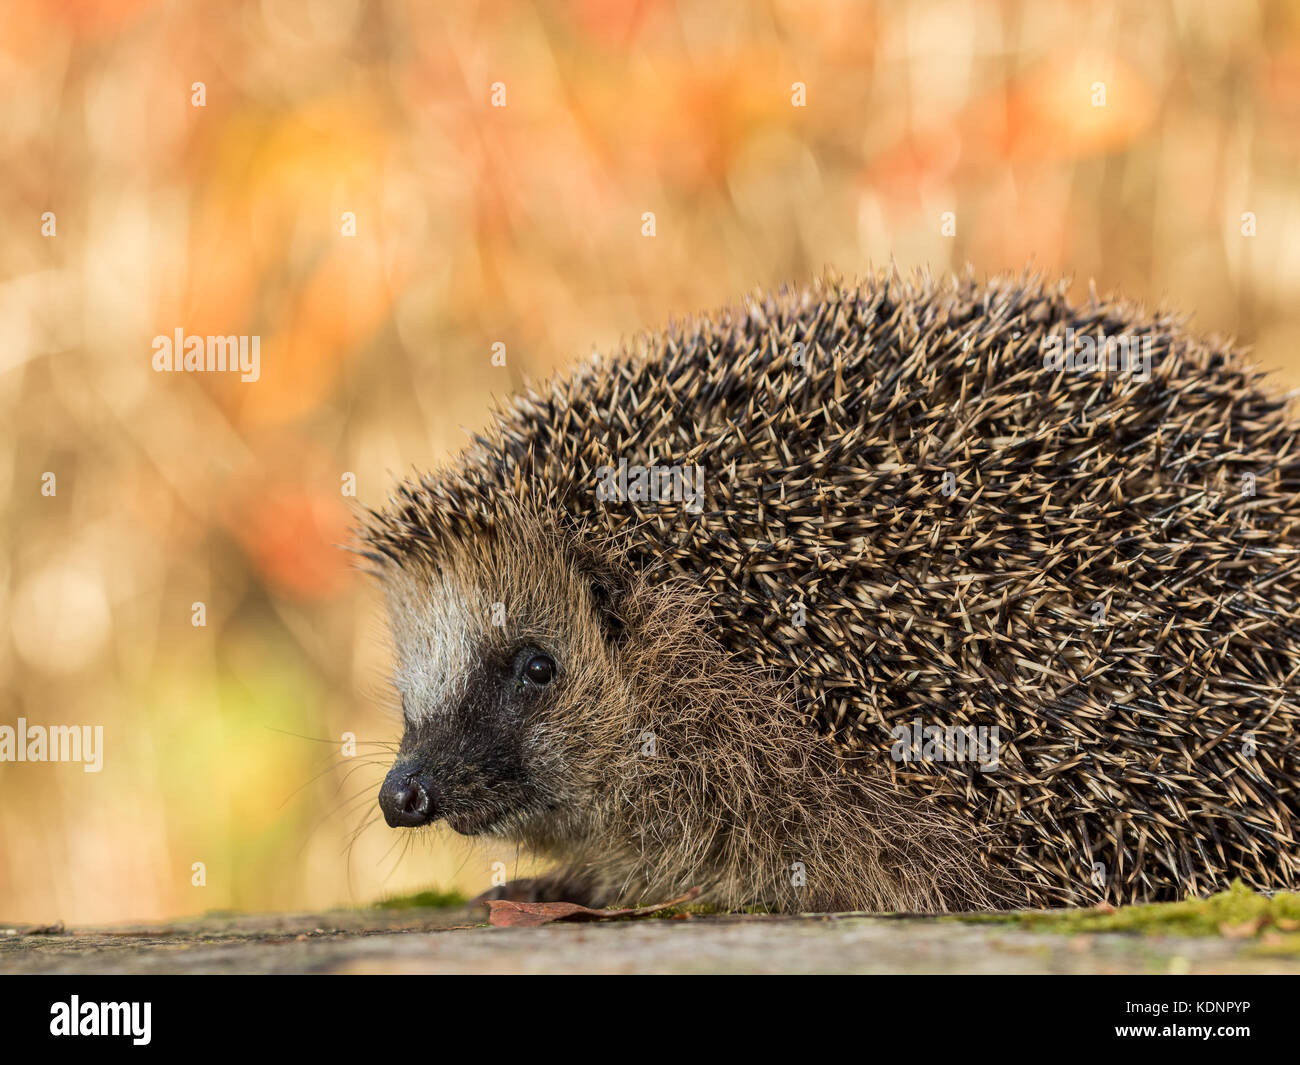 European hedgehog, Erinaceus europaeus in colorful autumn leaves looking in camera - Stock Image